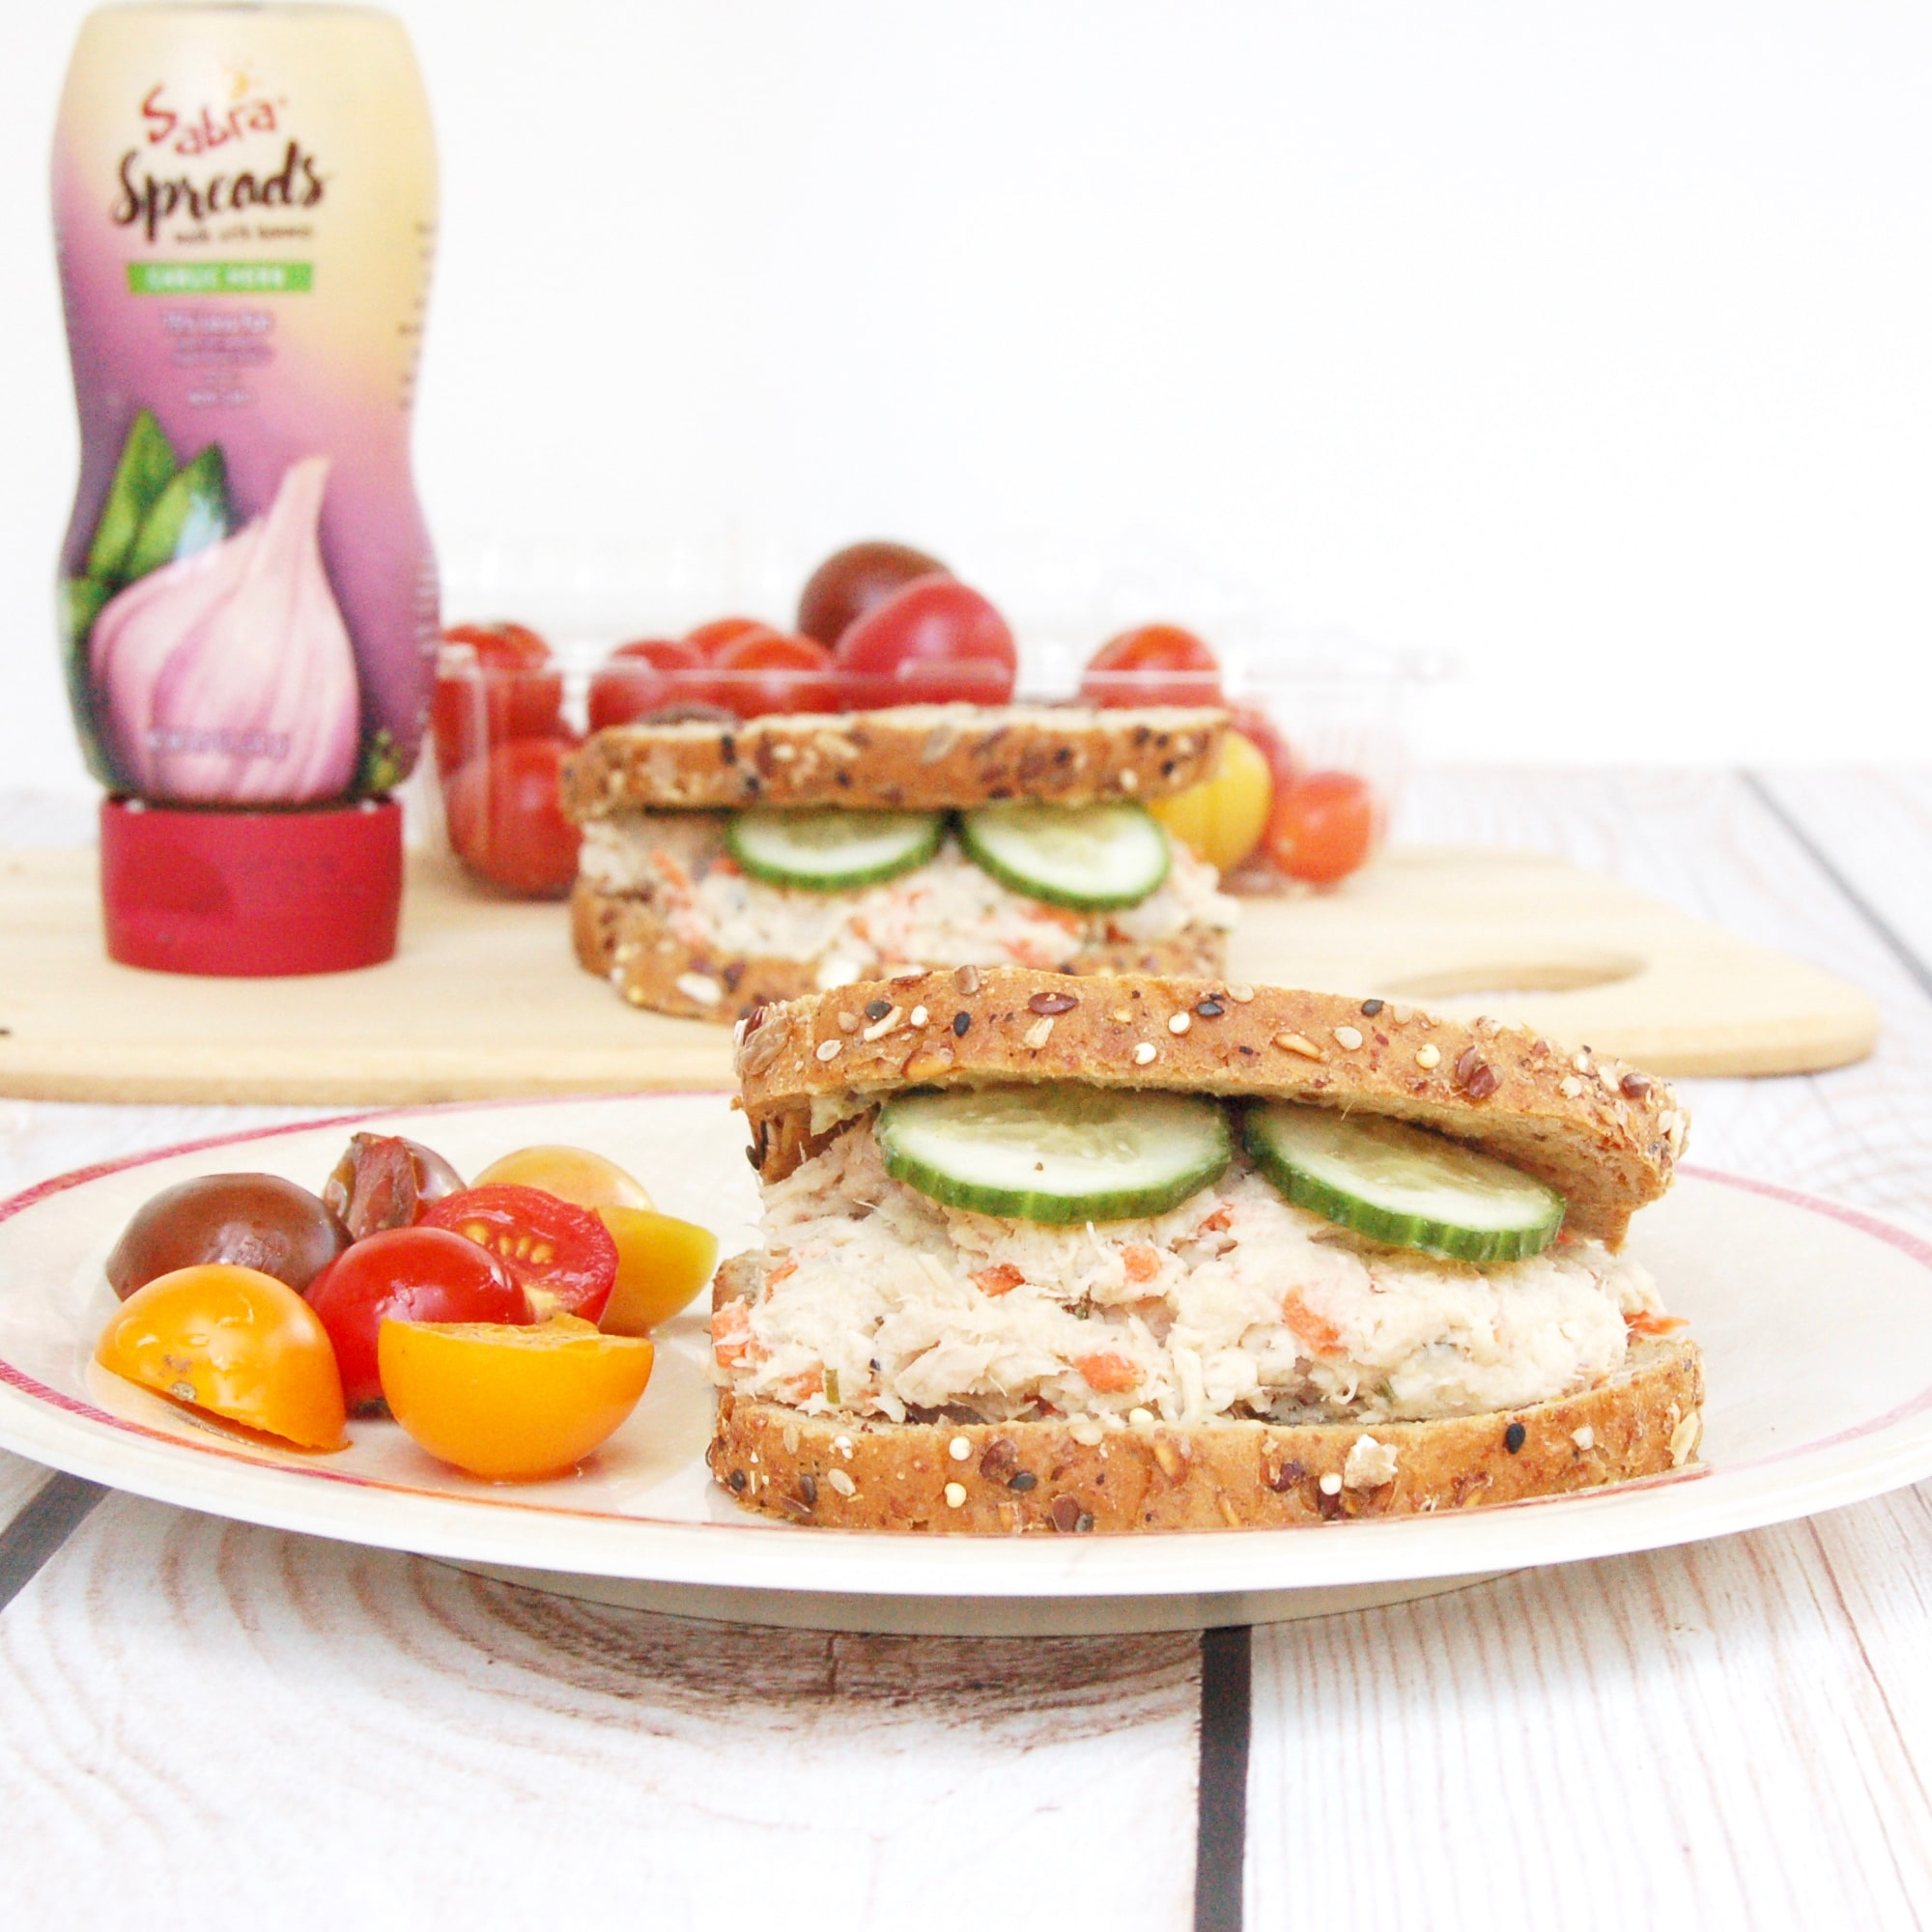 Mayo-Free Tuna Hummus Sandwich | The classic tuna sandwich gets an upgrade with this mayo-free tuna hummus salad sandwich, perfect for the kids' lunchbox or anyone's mid-day meal! Recipe @jlevinsonrd